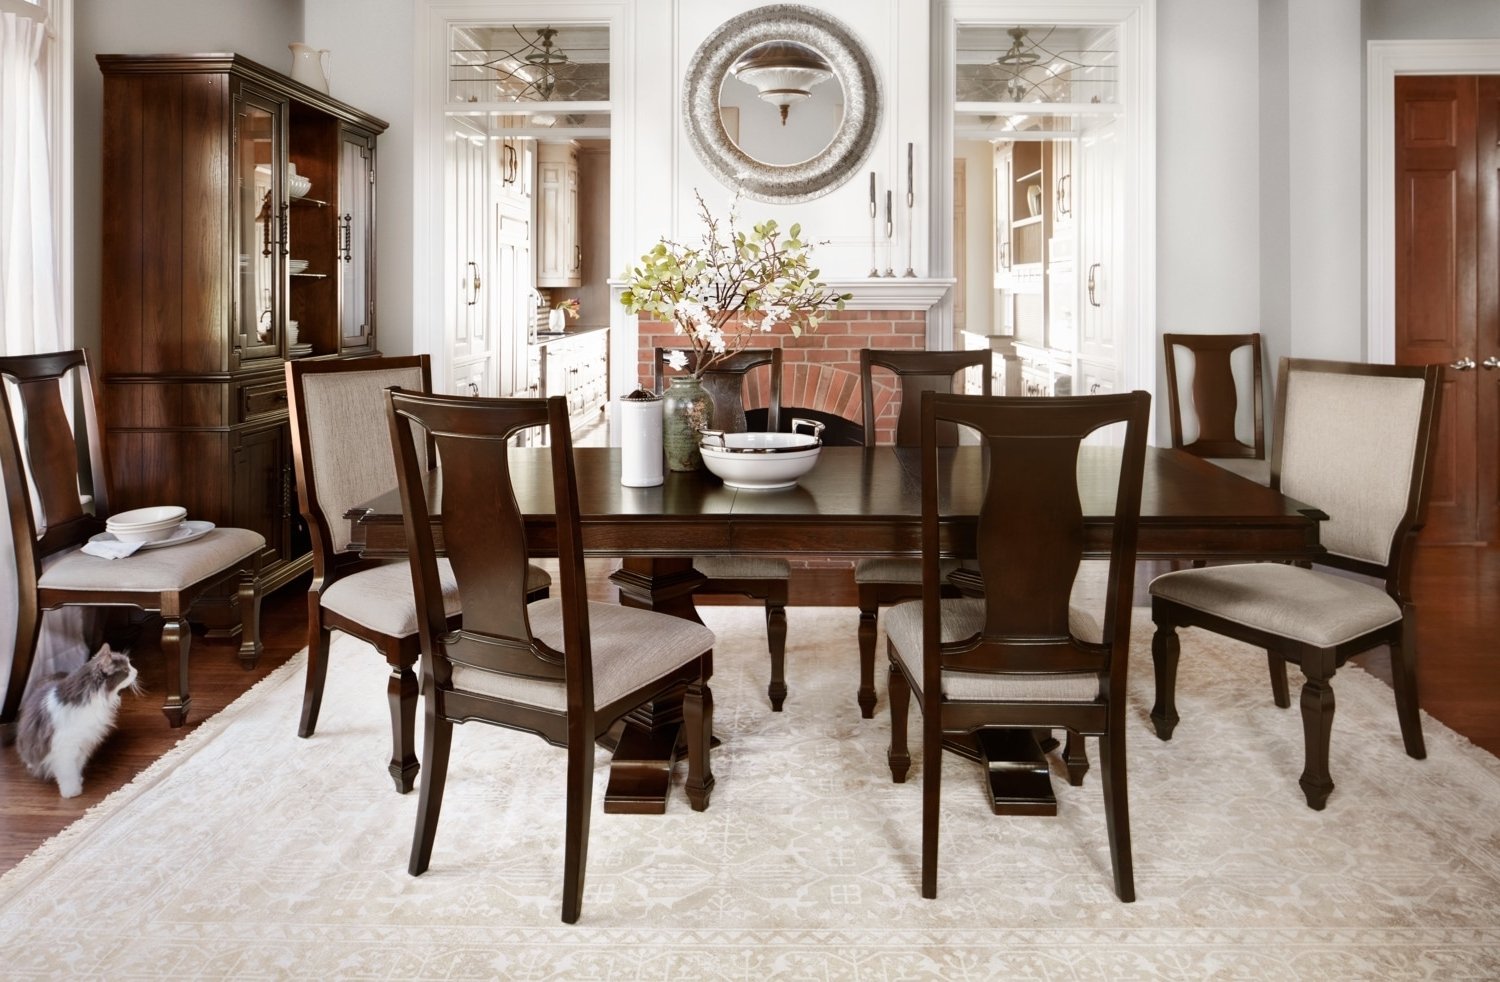 Trendy Vienna Dining Tables Regarding Vienna Dining Table, 6 Side Chairs And 2 Upholstered Side Chairs (View 15 of 25)